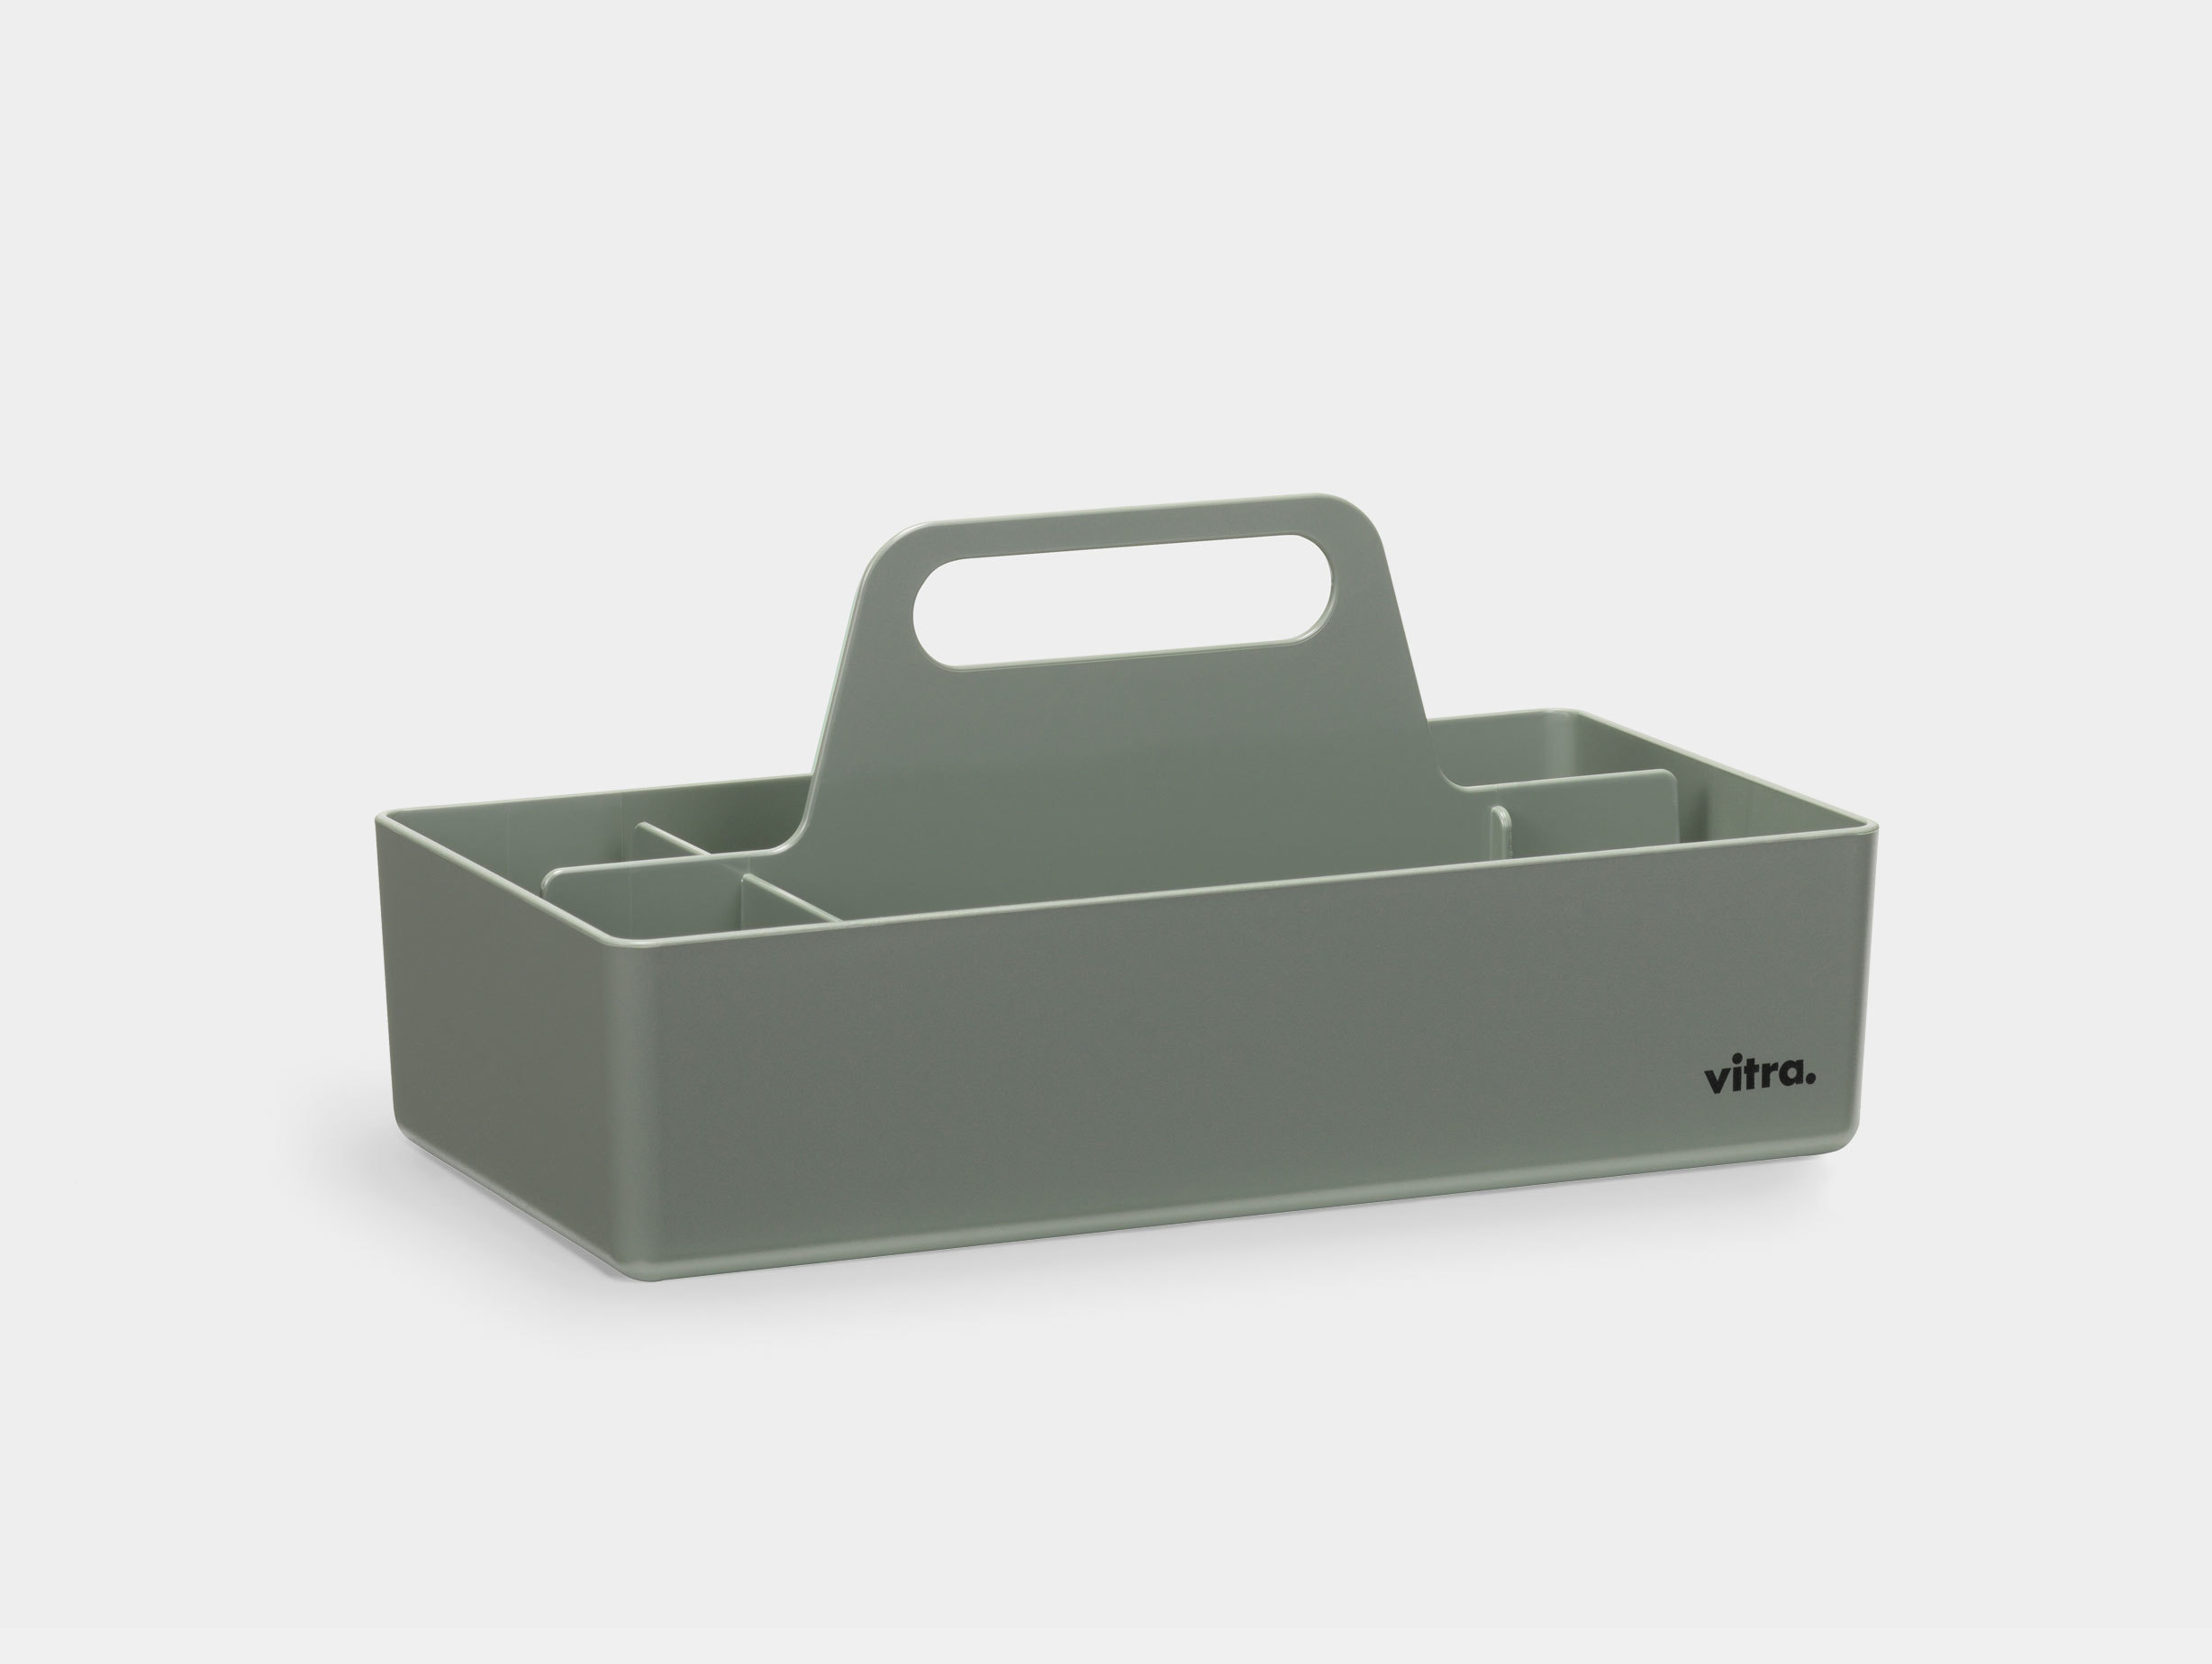 Vitra Toolbox Moss Grey Arik Levy